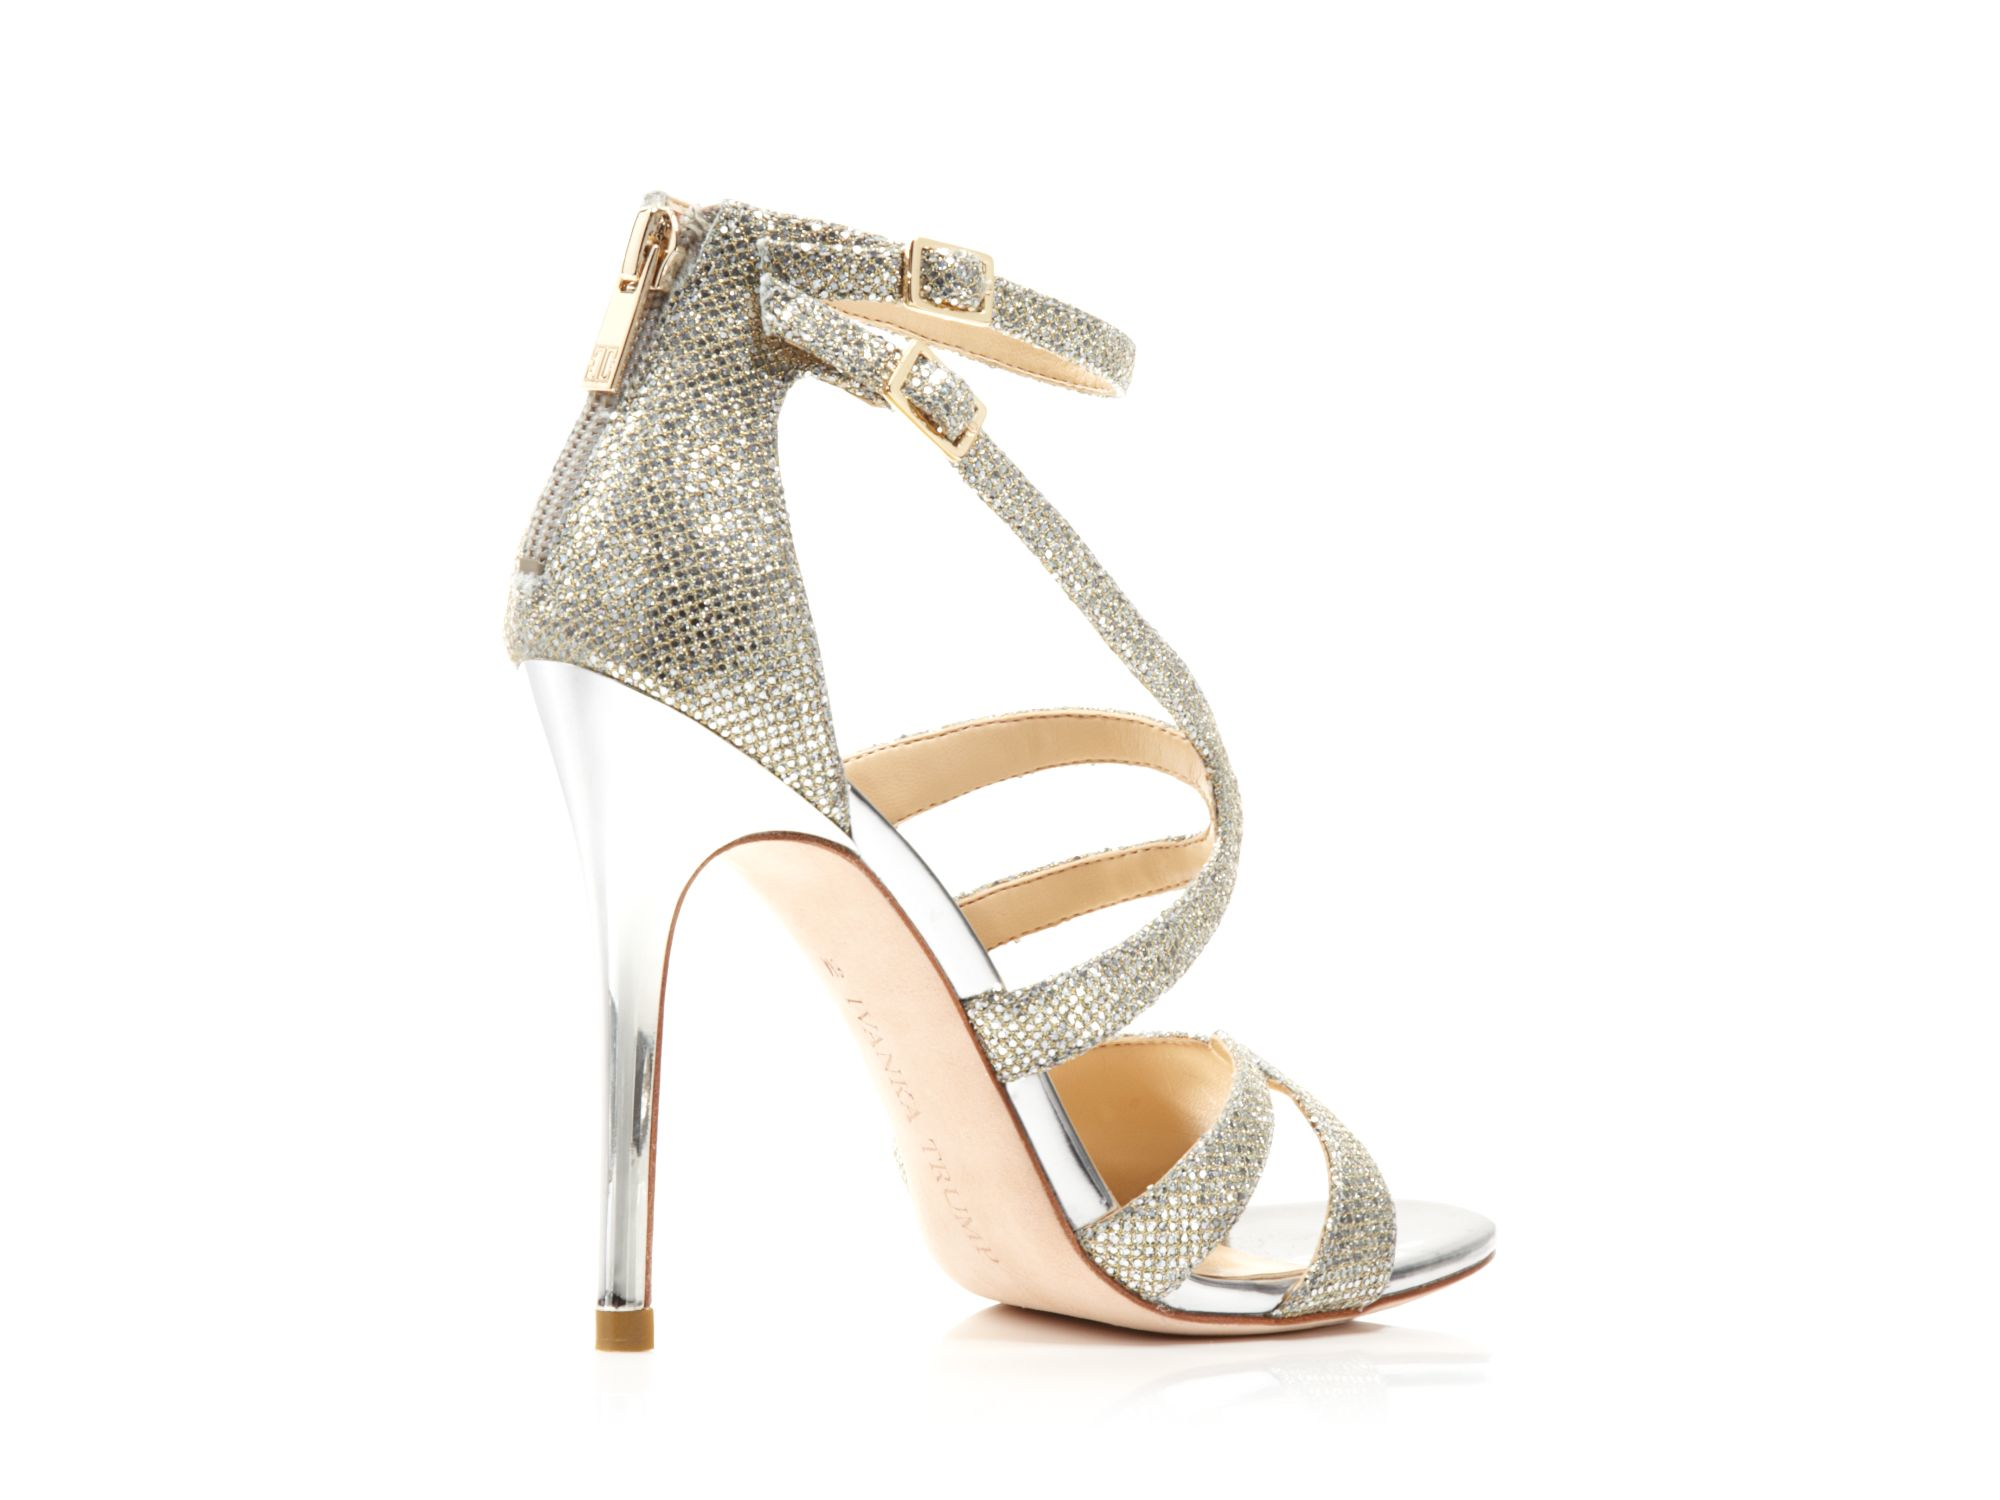 Ivanka trump Strappy High Heel Evening Sandals in Metallic | Lyst